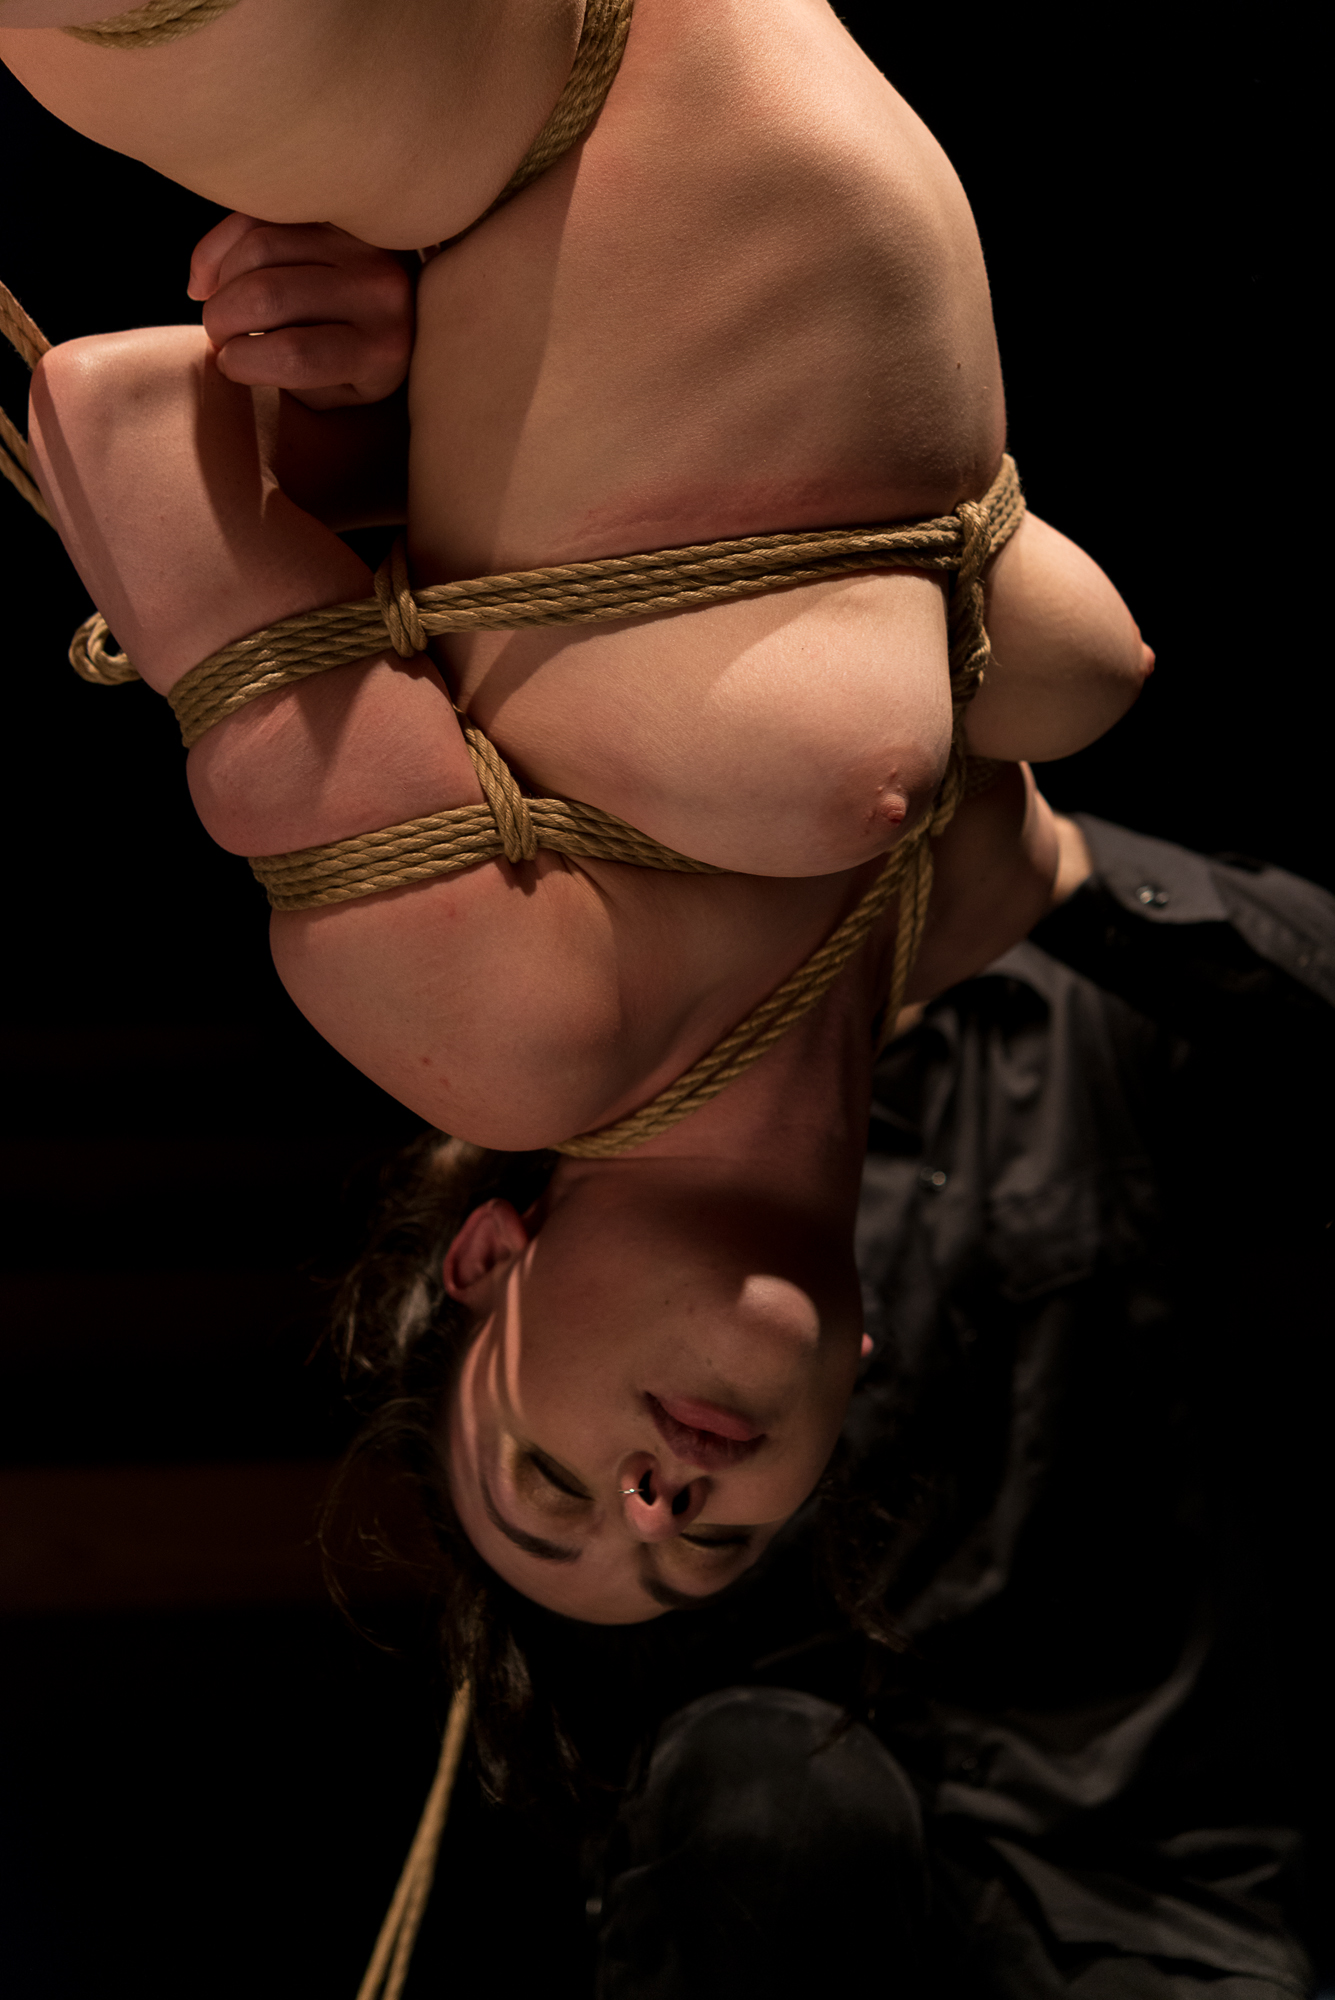 Bridge suspension, during a shibari performance by Pedro and Gestalta